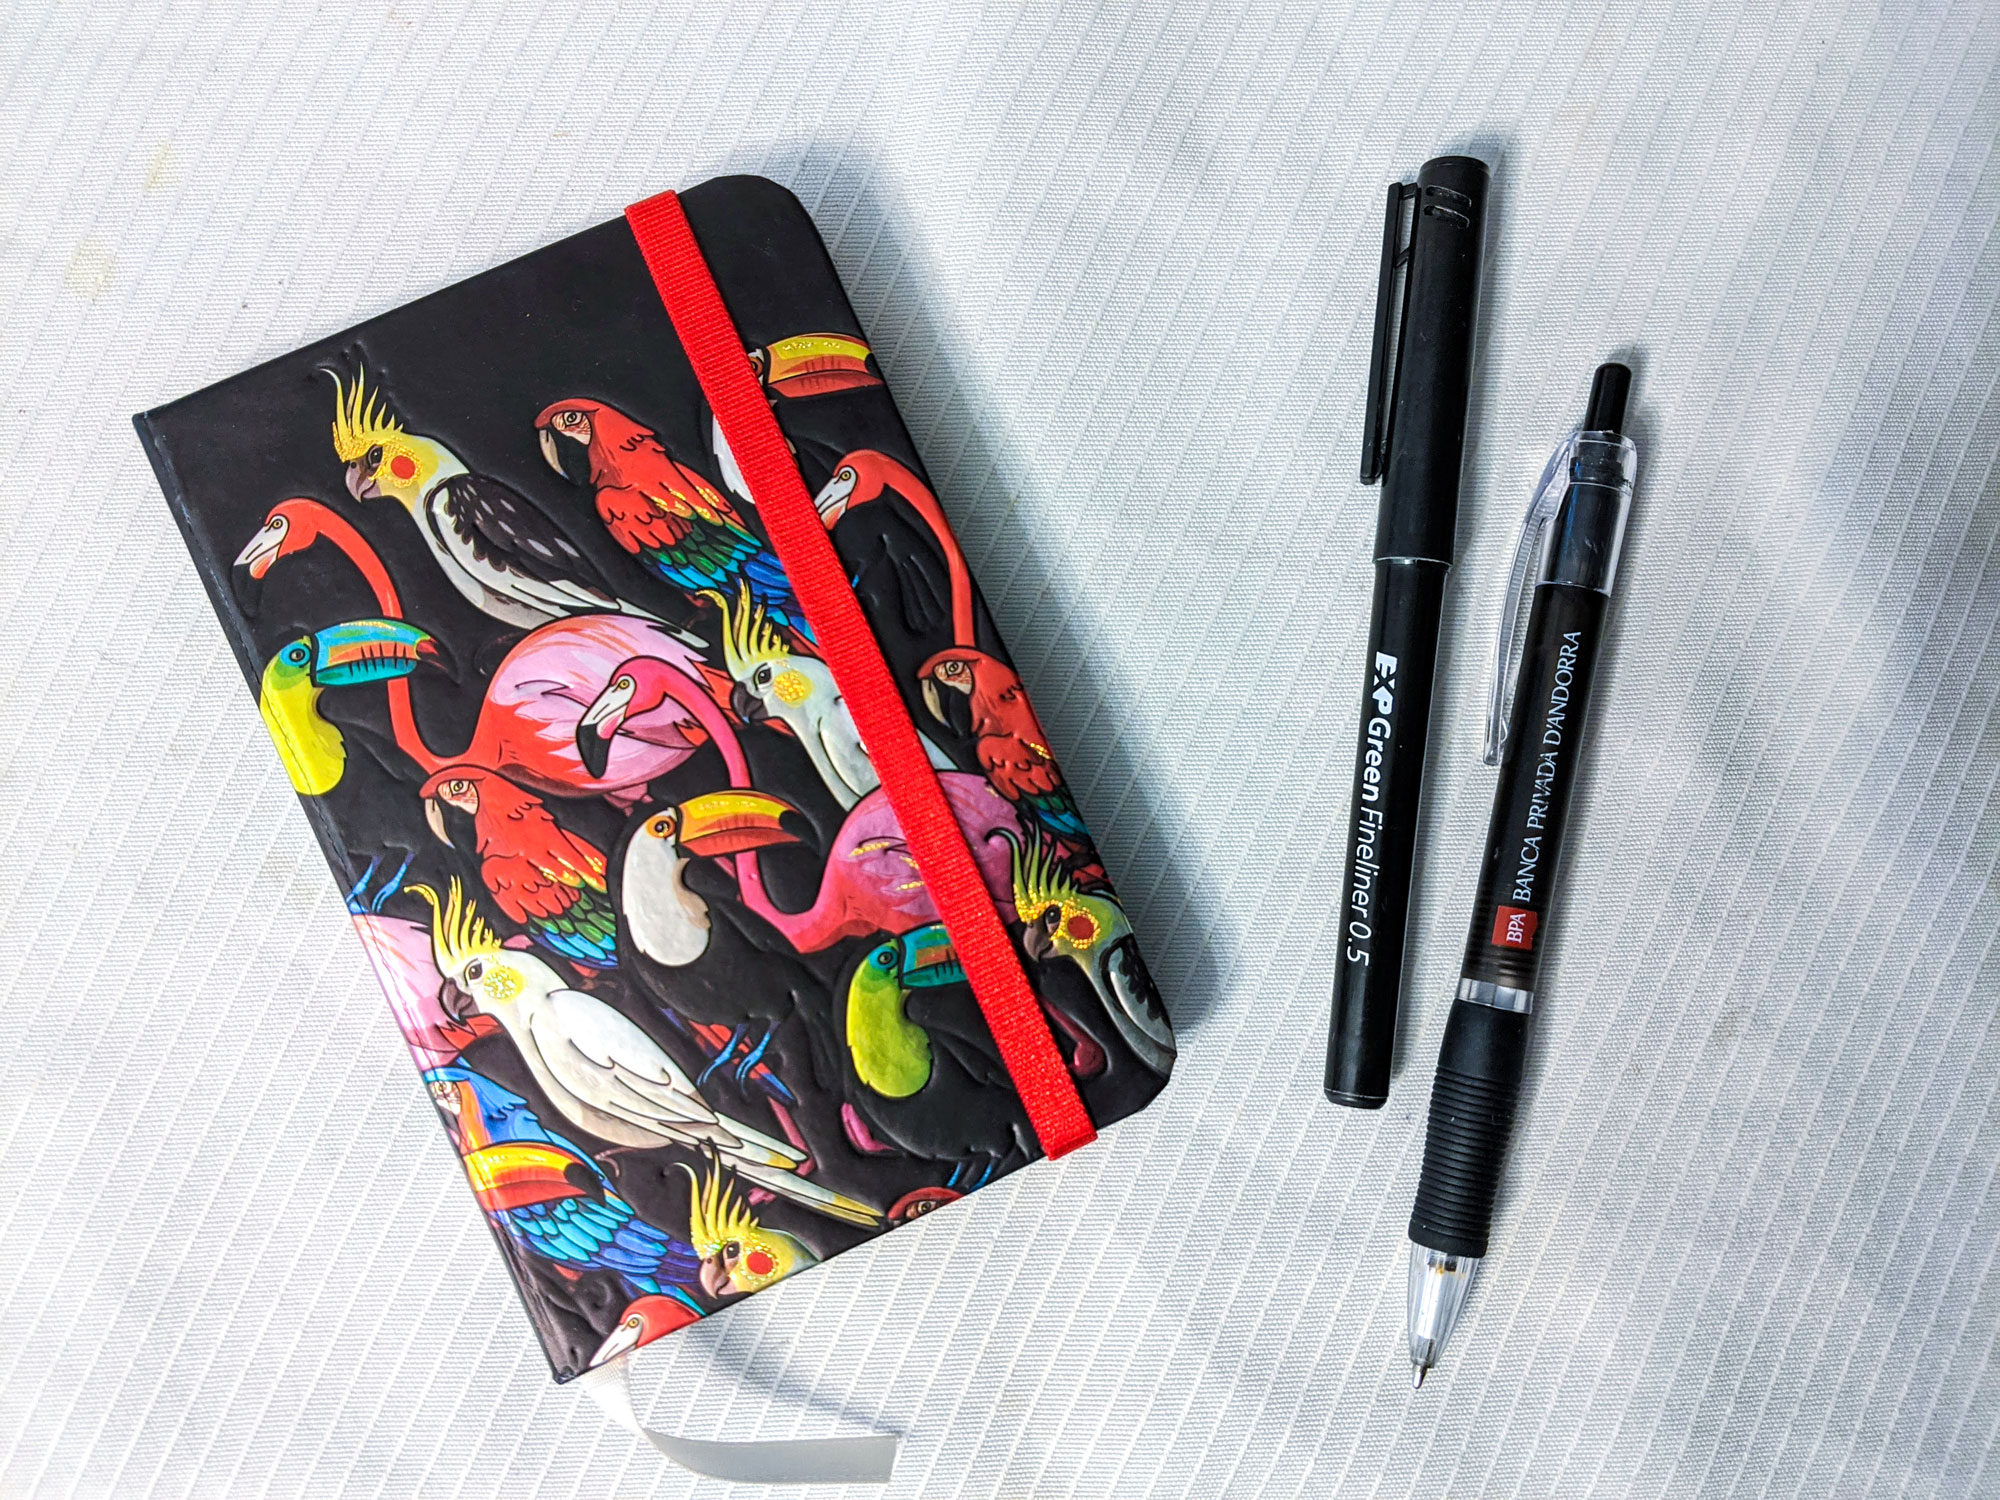 black book with bright birds on the cover, two black pens next to it, all on a white cloth background